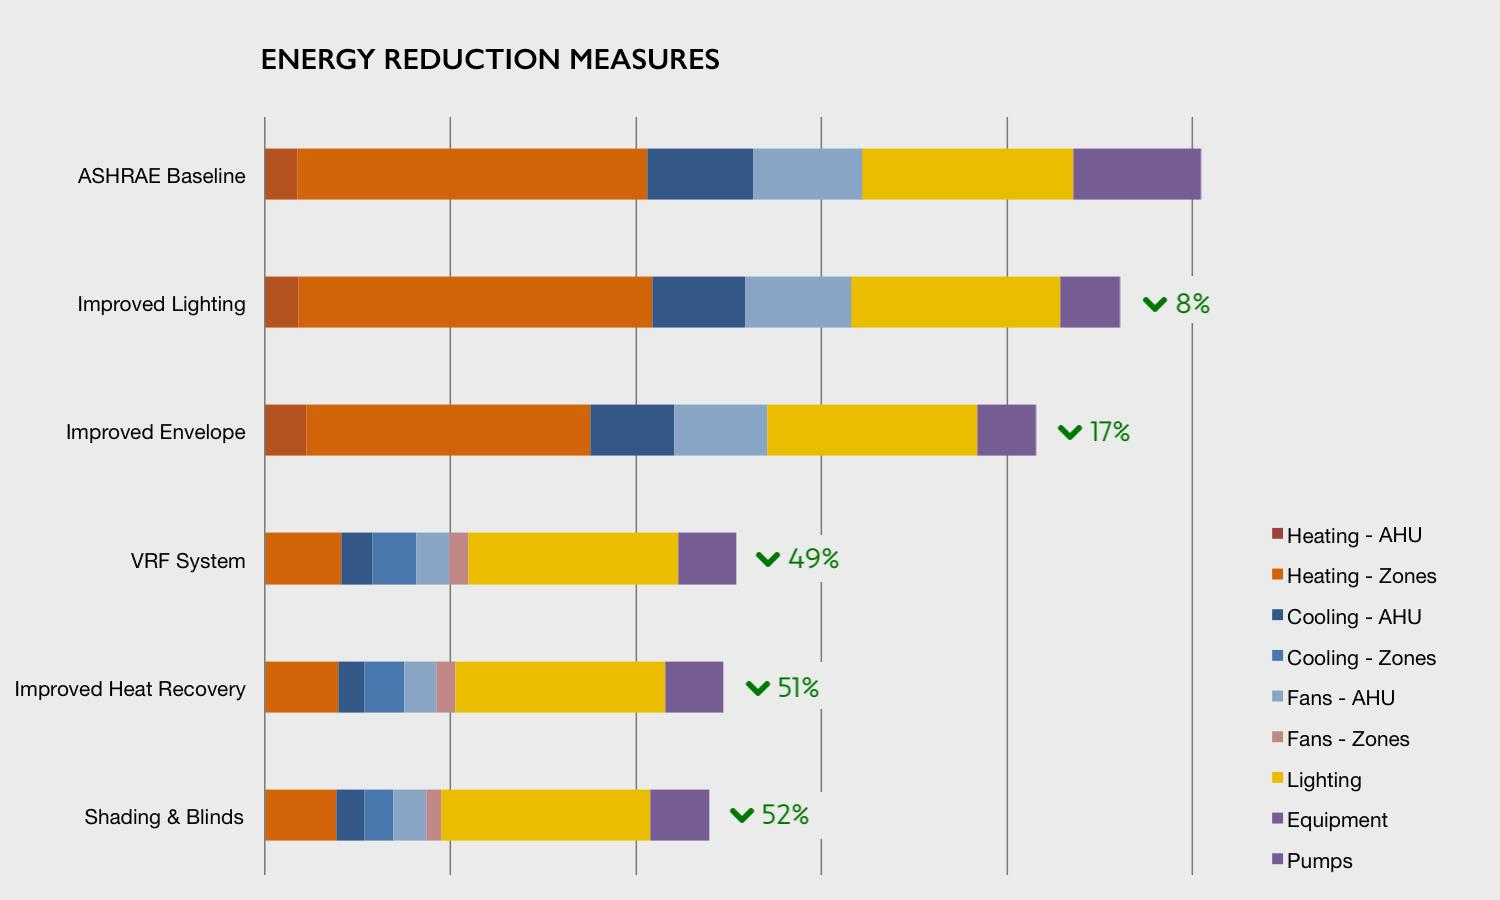 Energy Reduction Measures